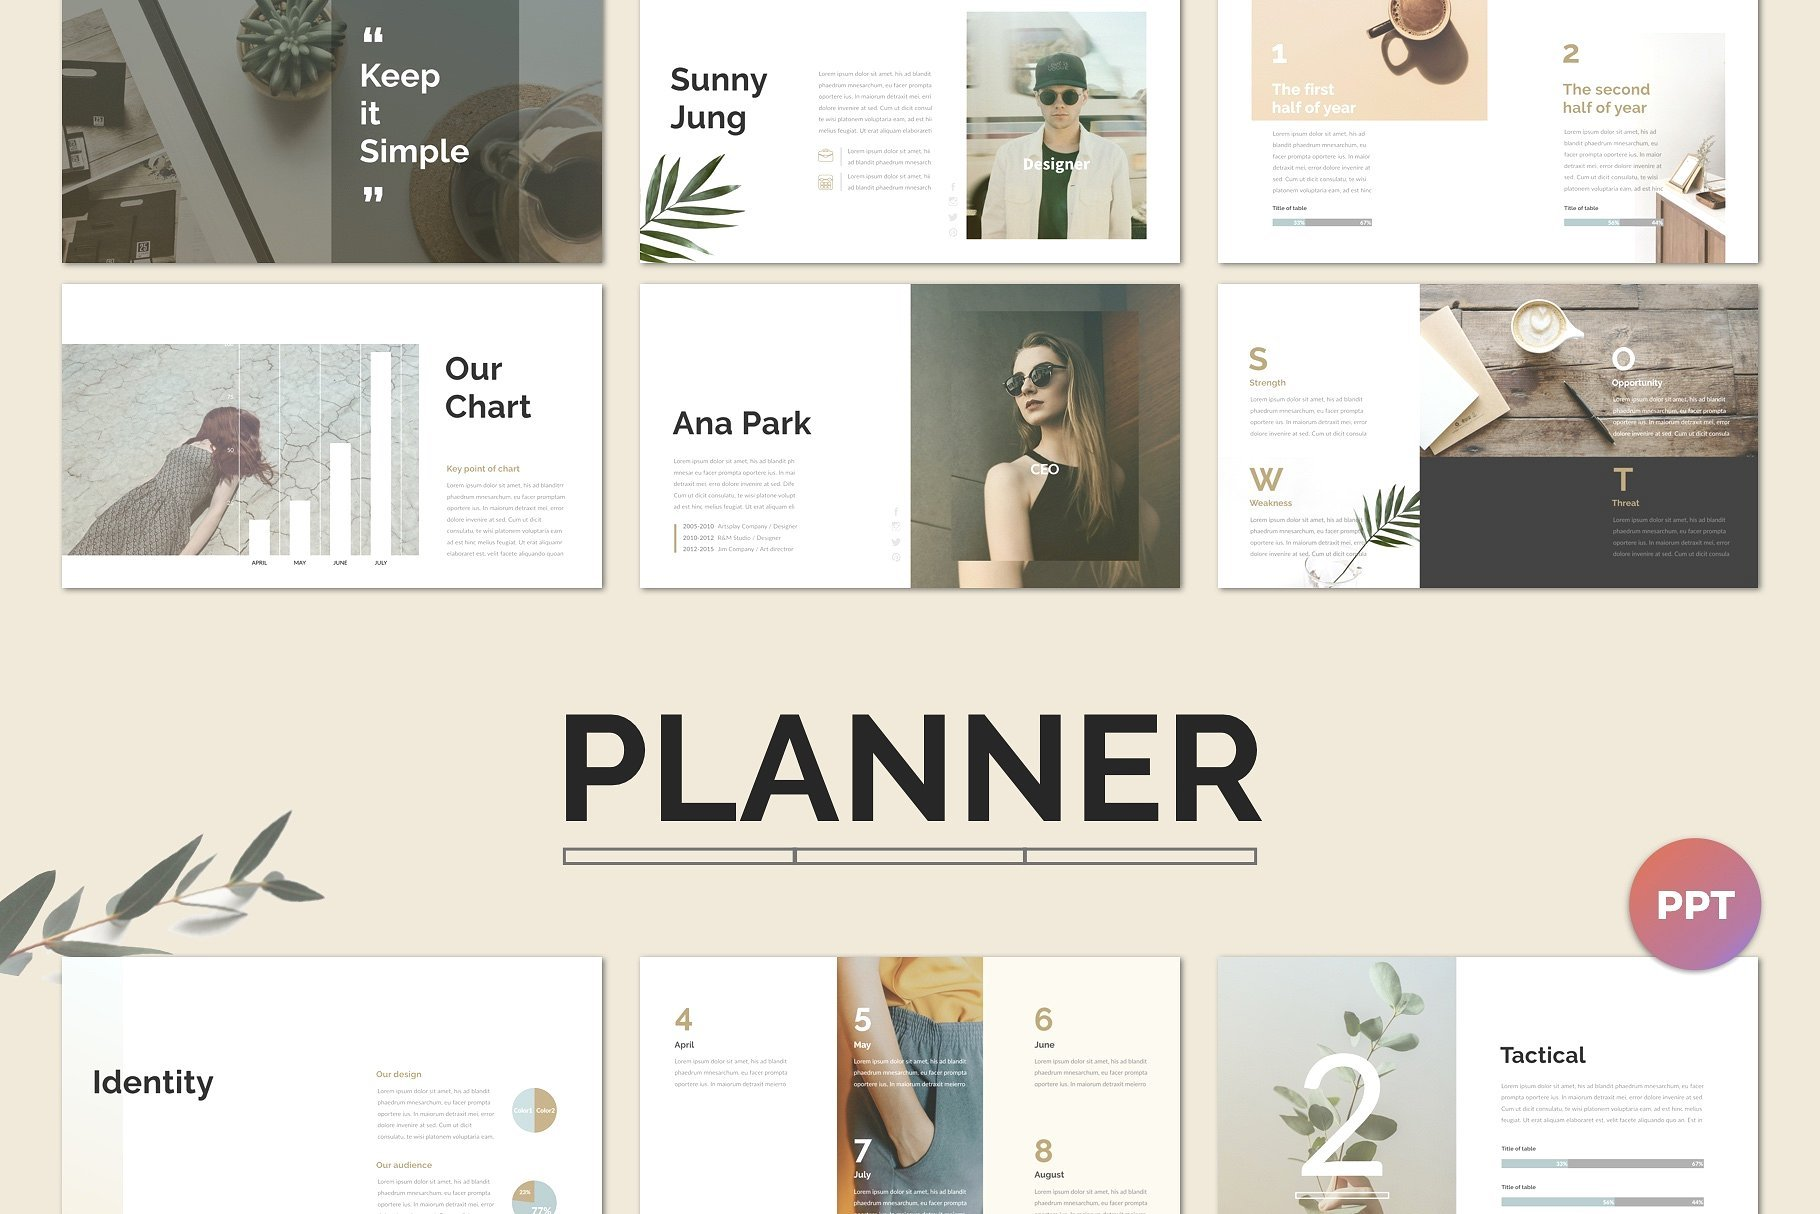 50 Creative PowerPoint Templates in 2020: Free And Premium. Best Creative Presentation Ideas - planner cm 1